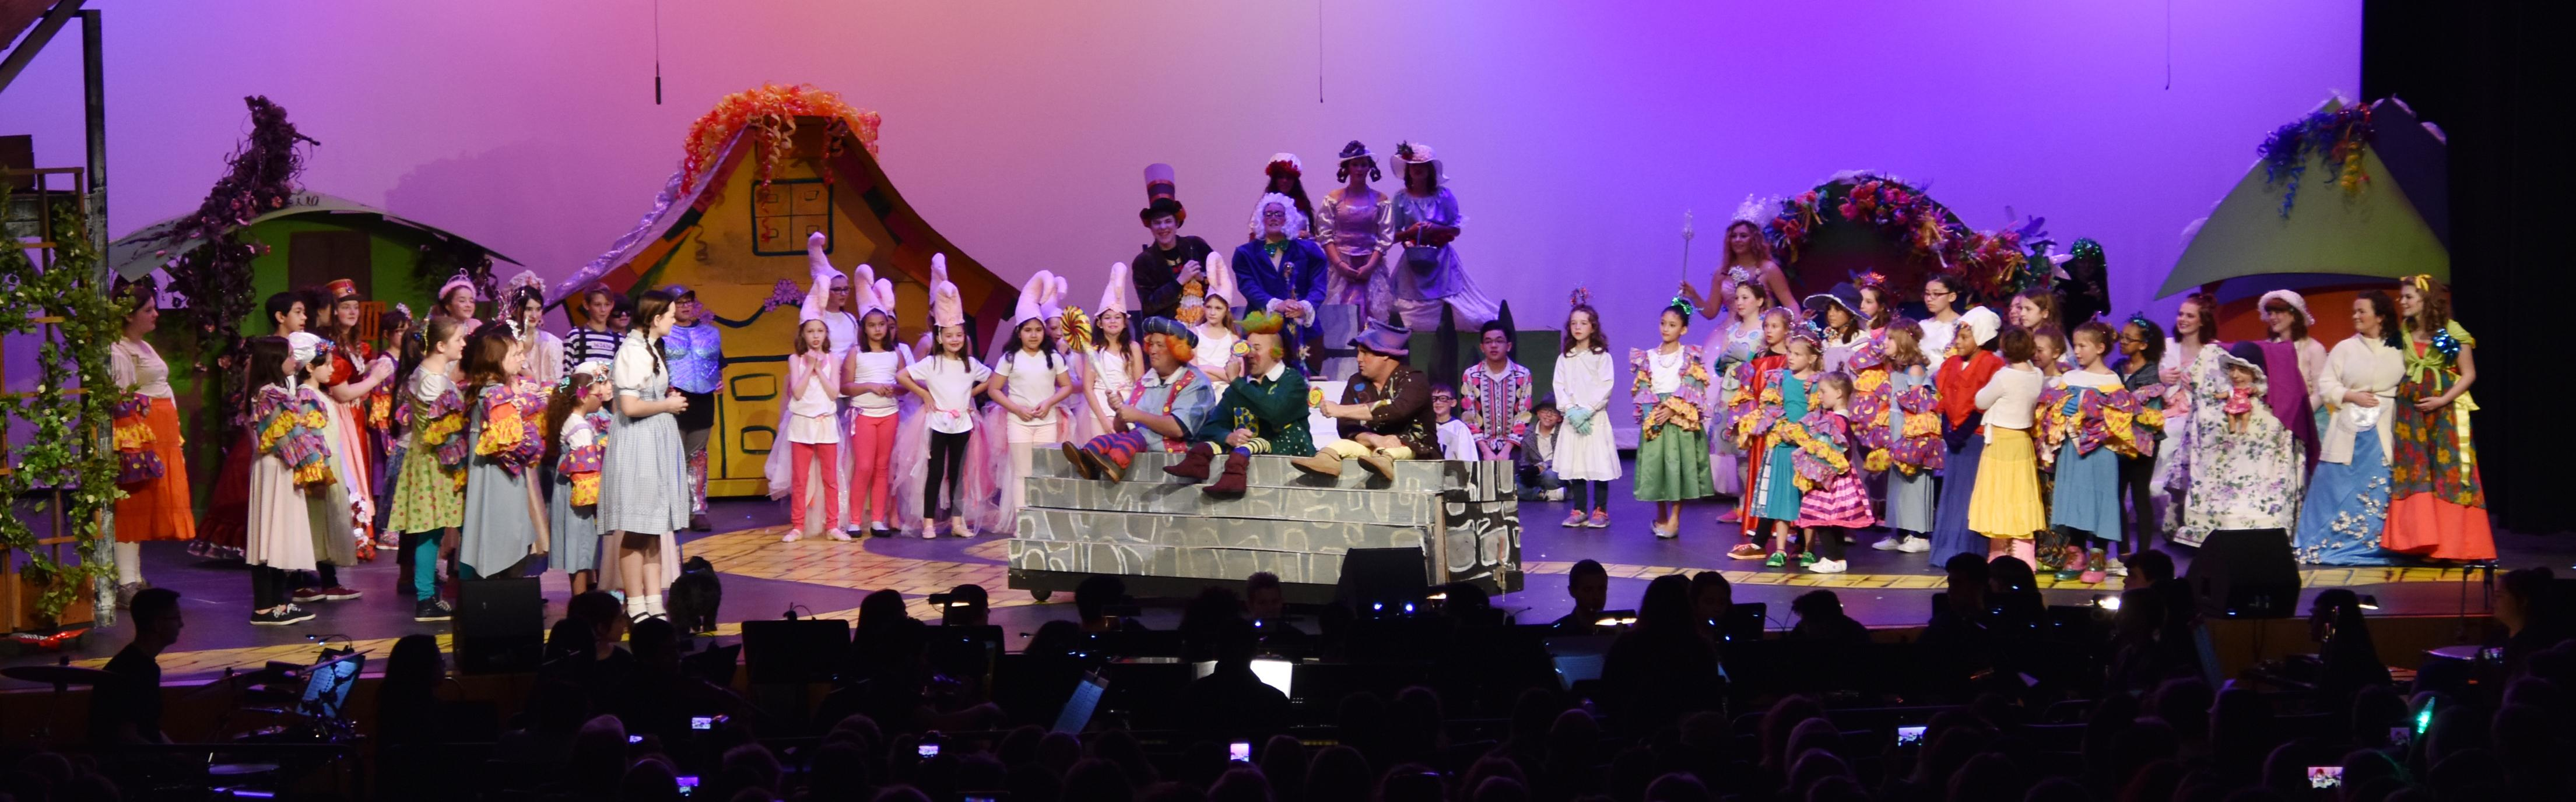 "More than 200 third through 12th grade White Settlement ISD students performed to packed audiences during the district-wide musical, ""The Wizard of Oz,"""